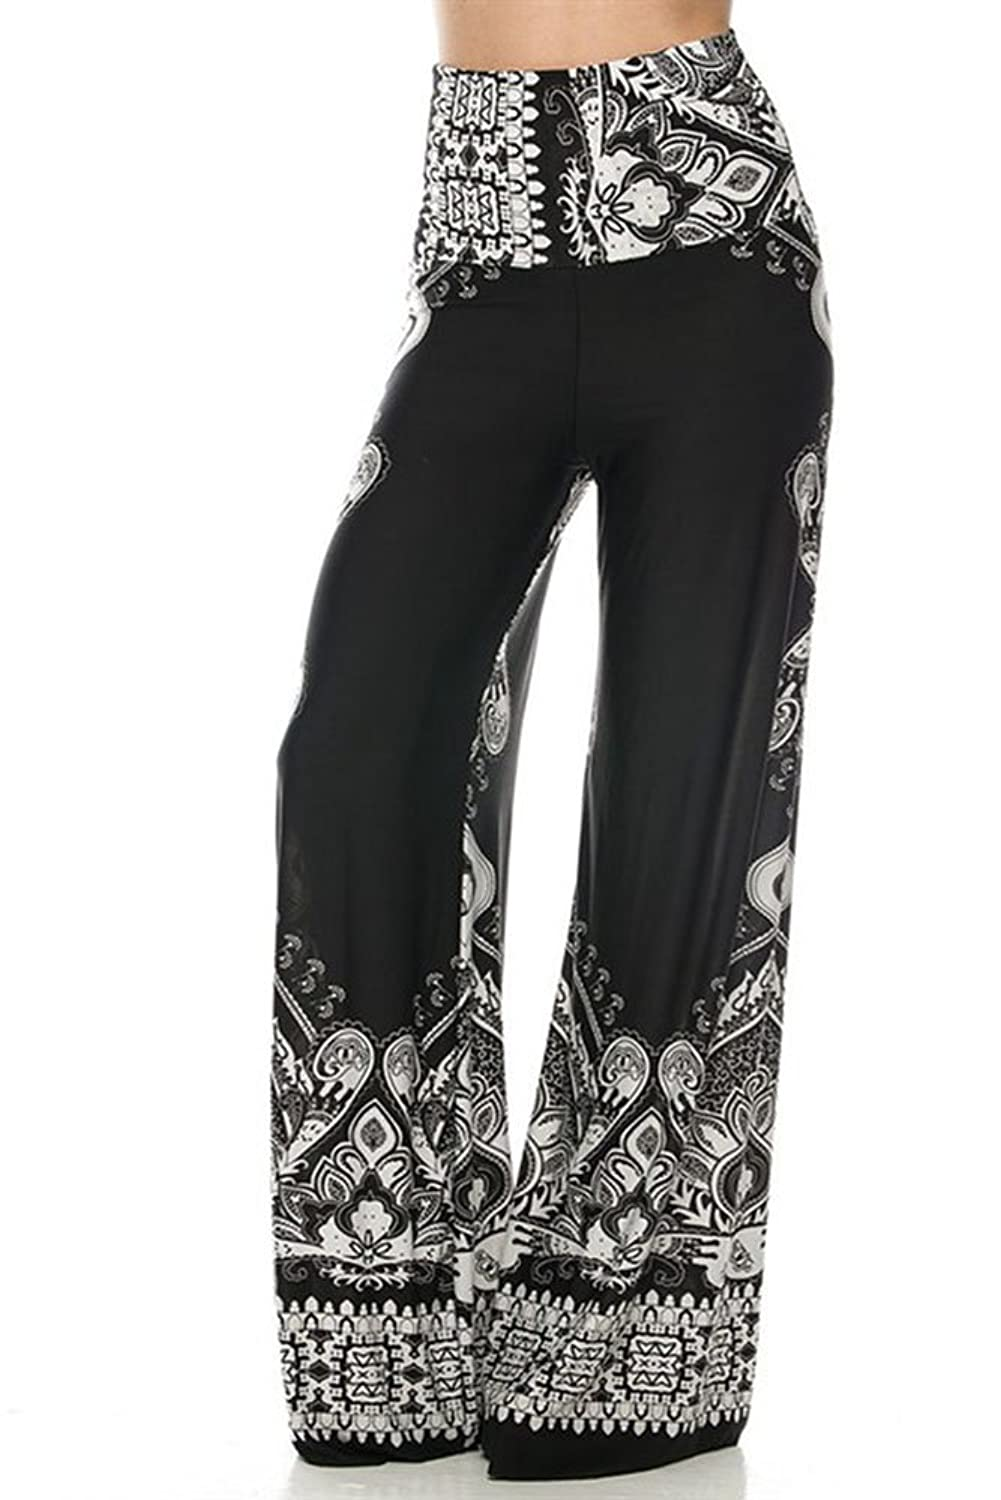 Lovely Pair Inc Women Printed Boho Palazzo Blk/Wh